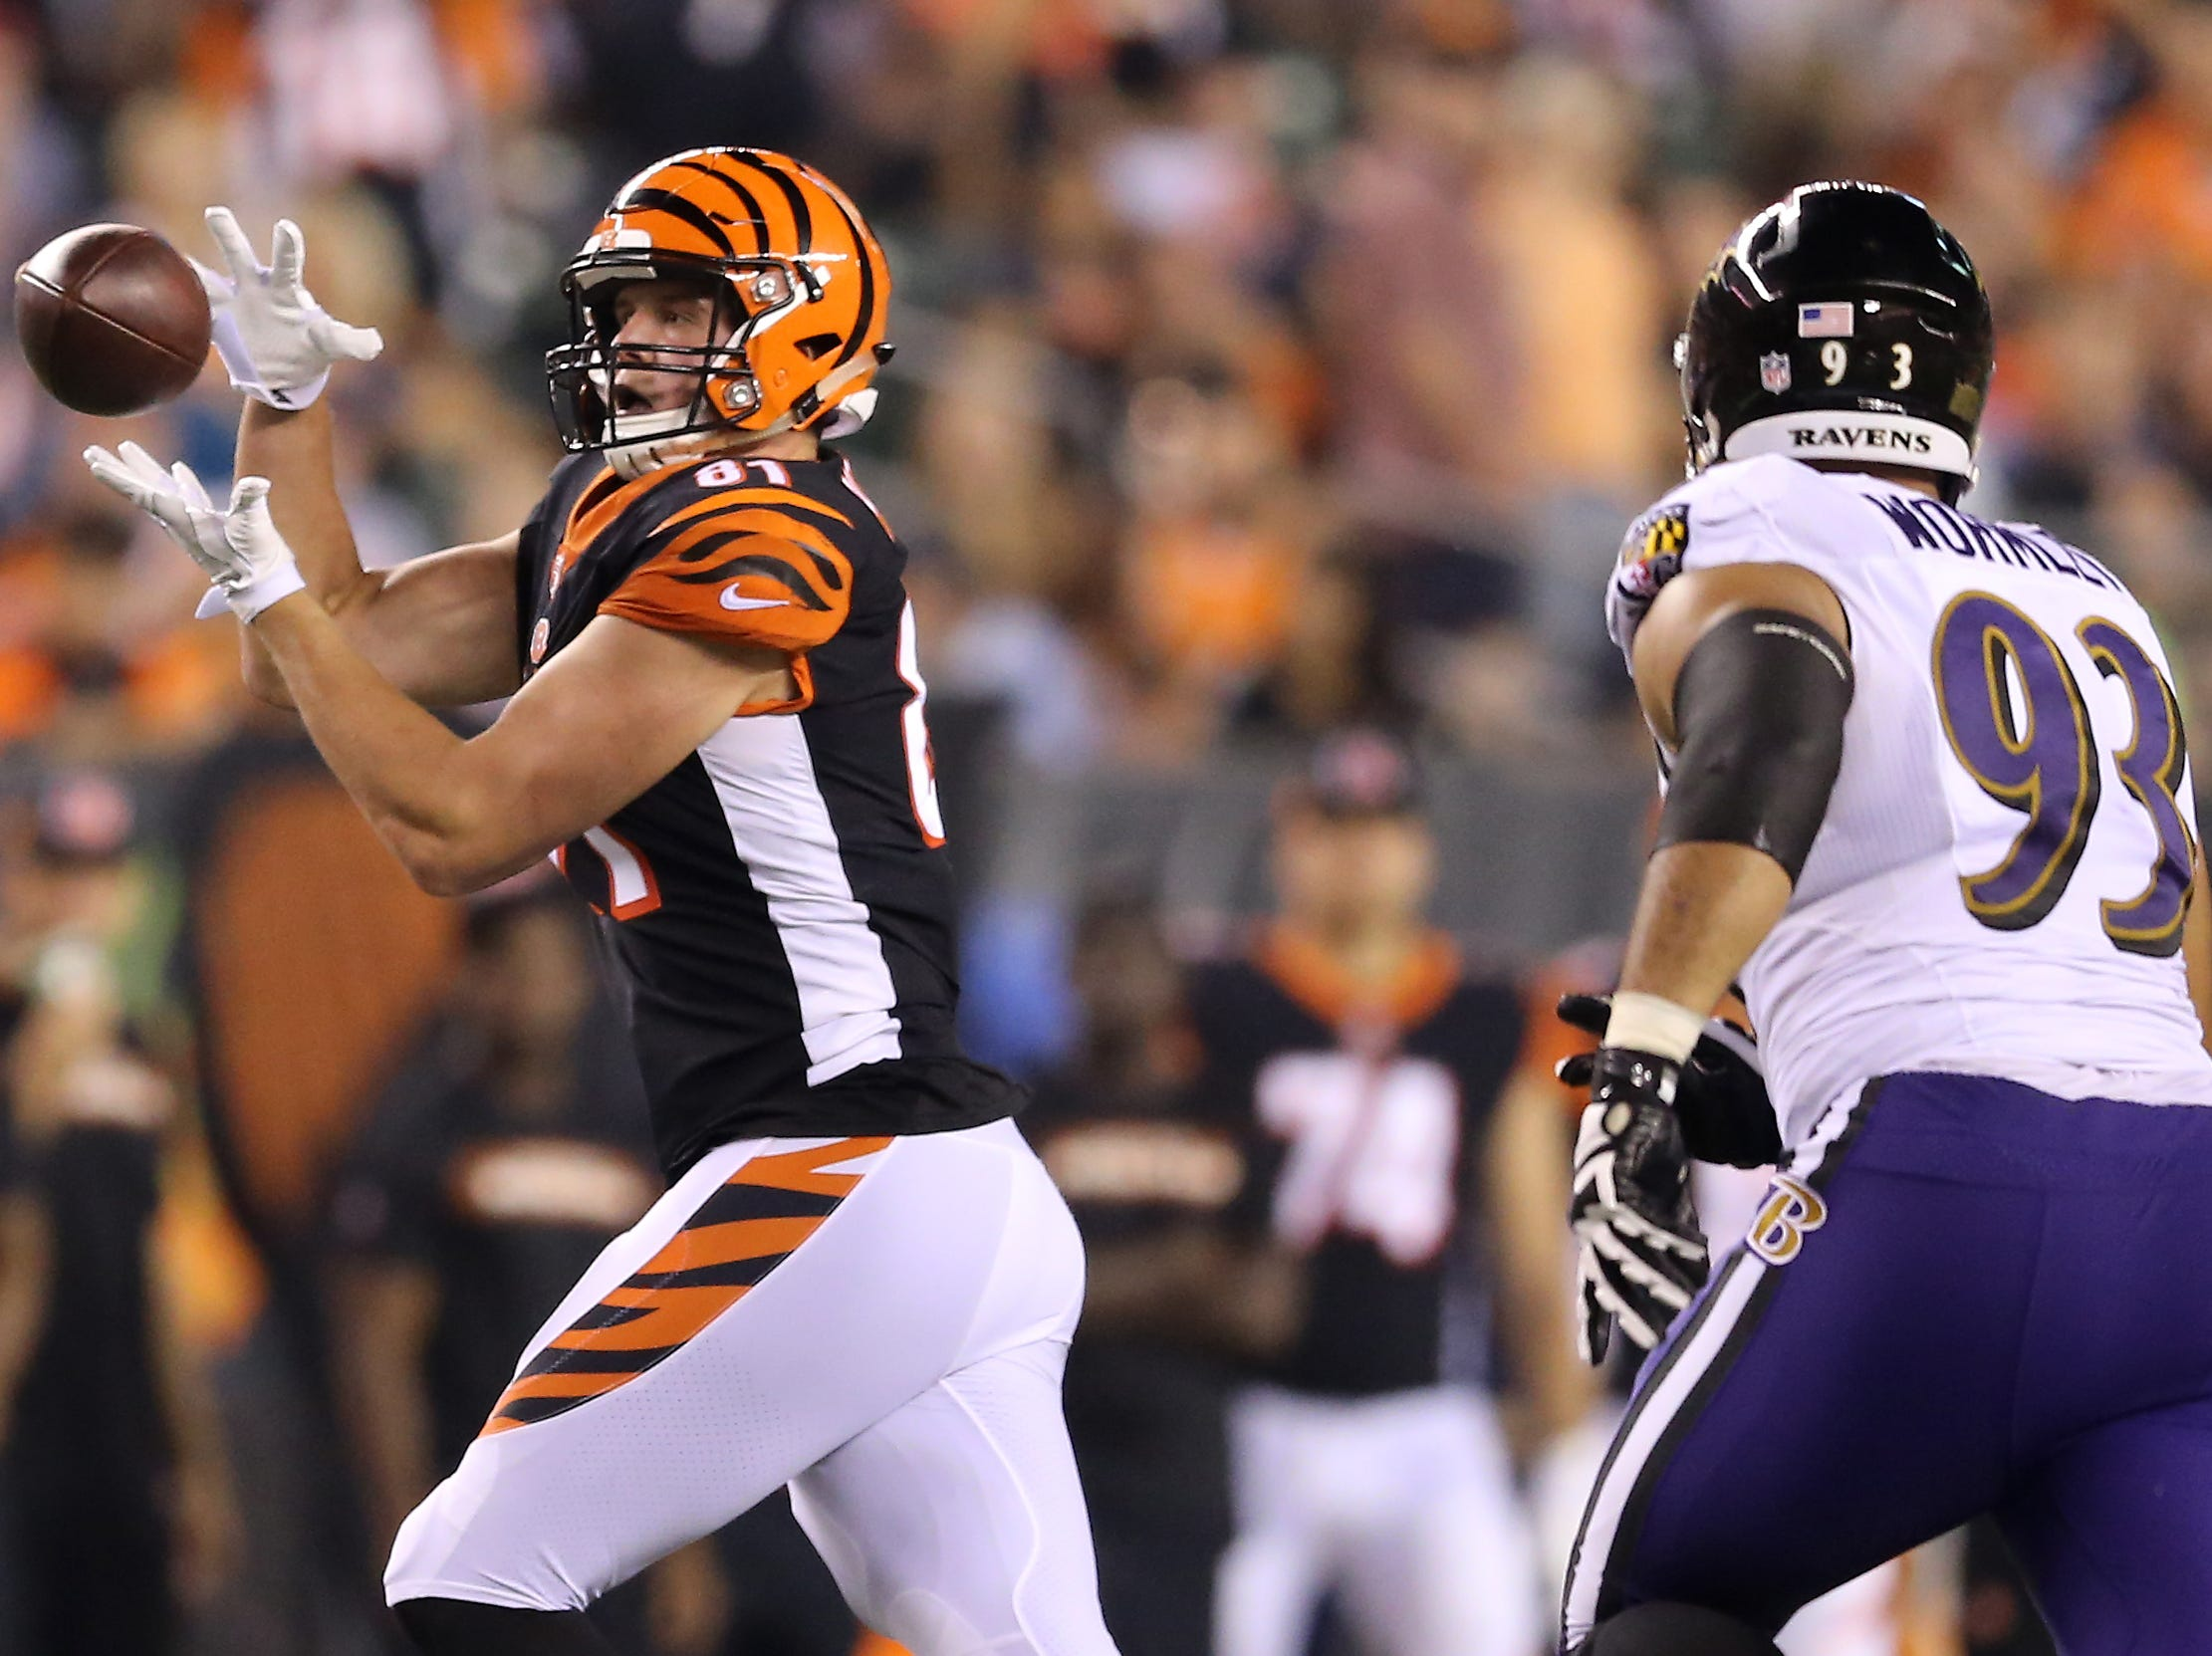 Cincinnati Bengals tight end Tyler Kroft (81) catches a pass in the third quarter during the Week 2 NFL football game between the Baltimore Ravens and the Cincinnati Bengals, Friday, Sept. 14, 2018, Paul Brown Stadium in Cincinnati. Cincinnati won 34-23.